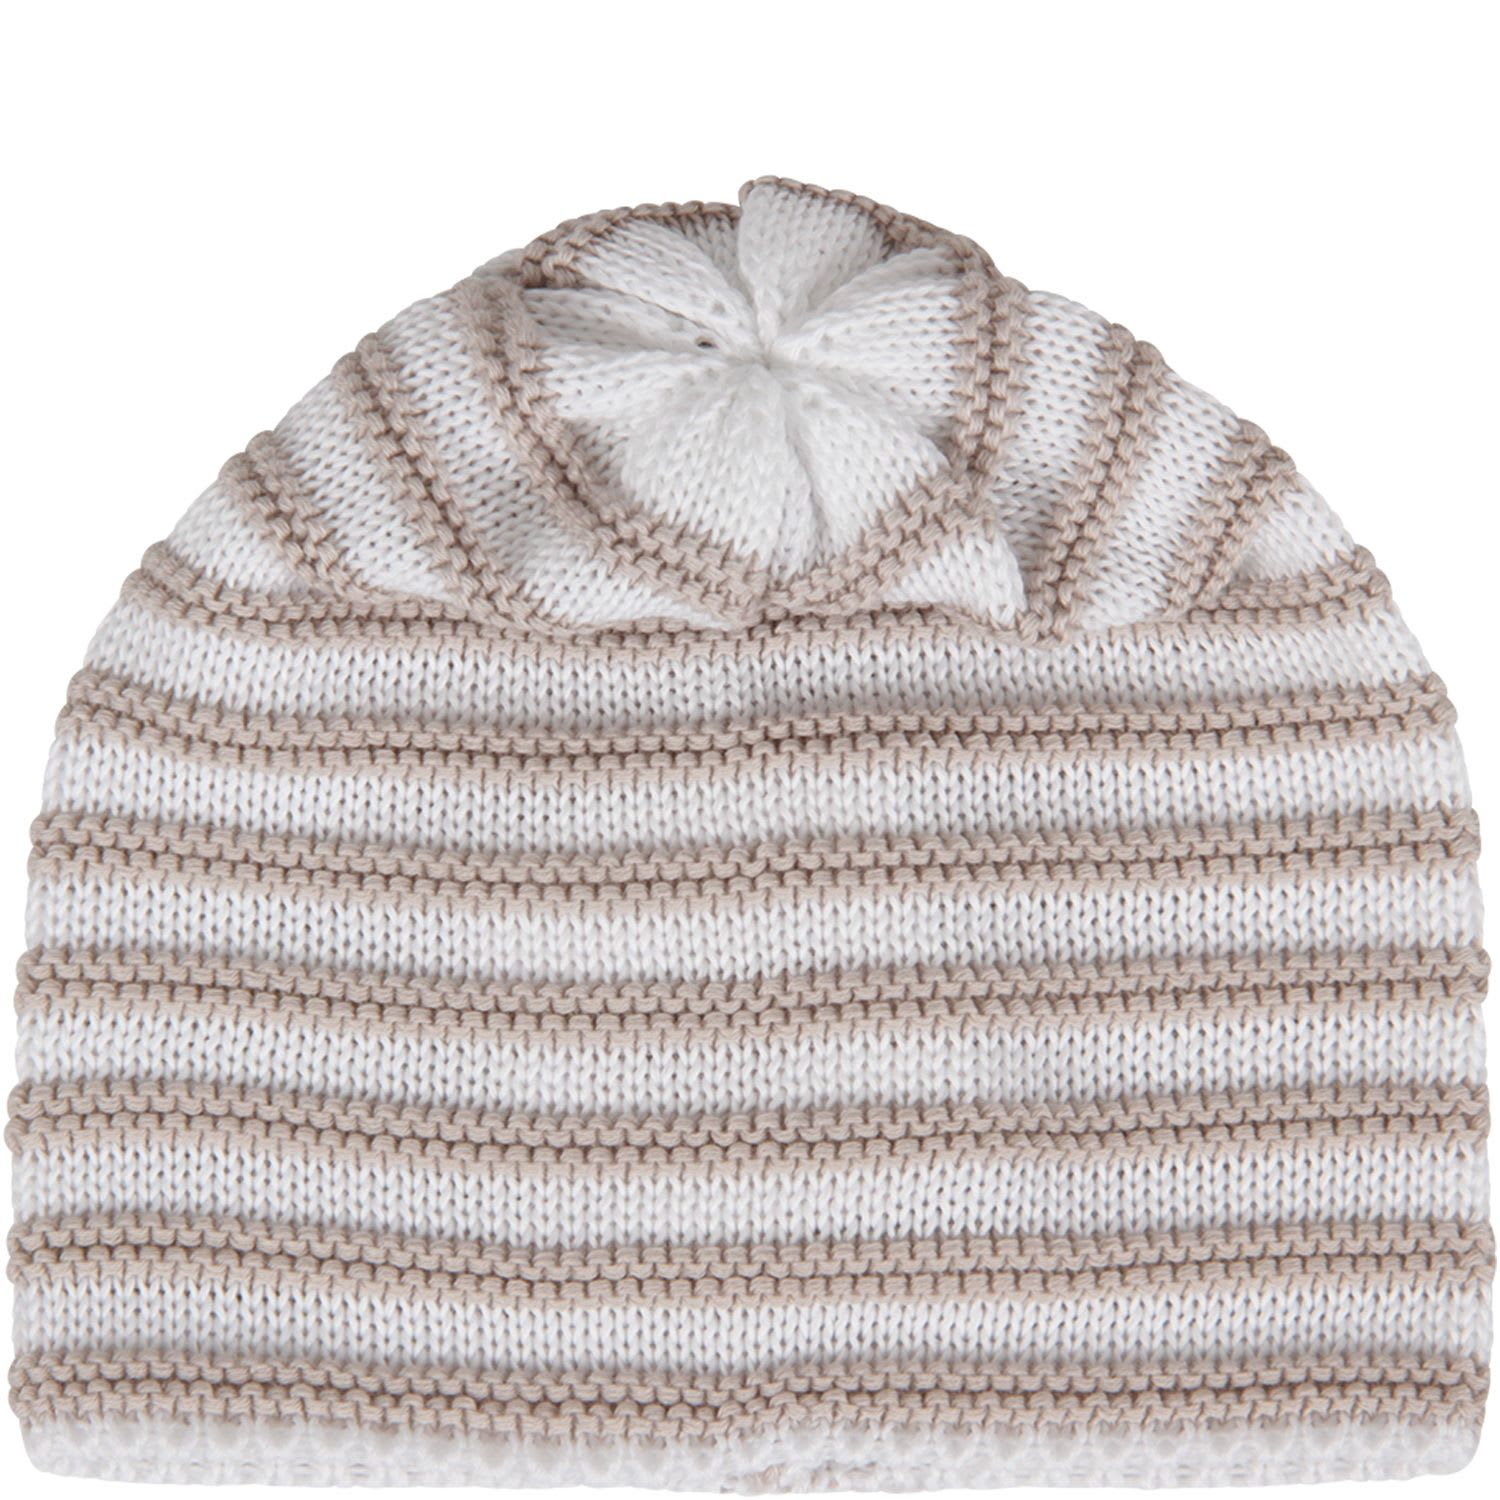 White And Beige Hat For Baby Kid